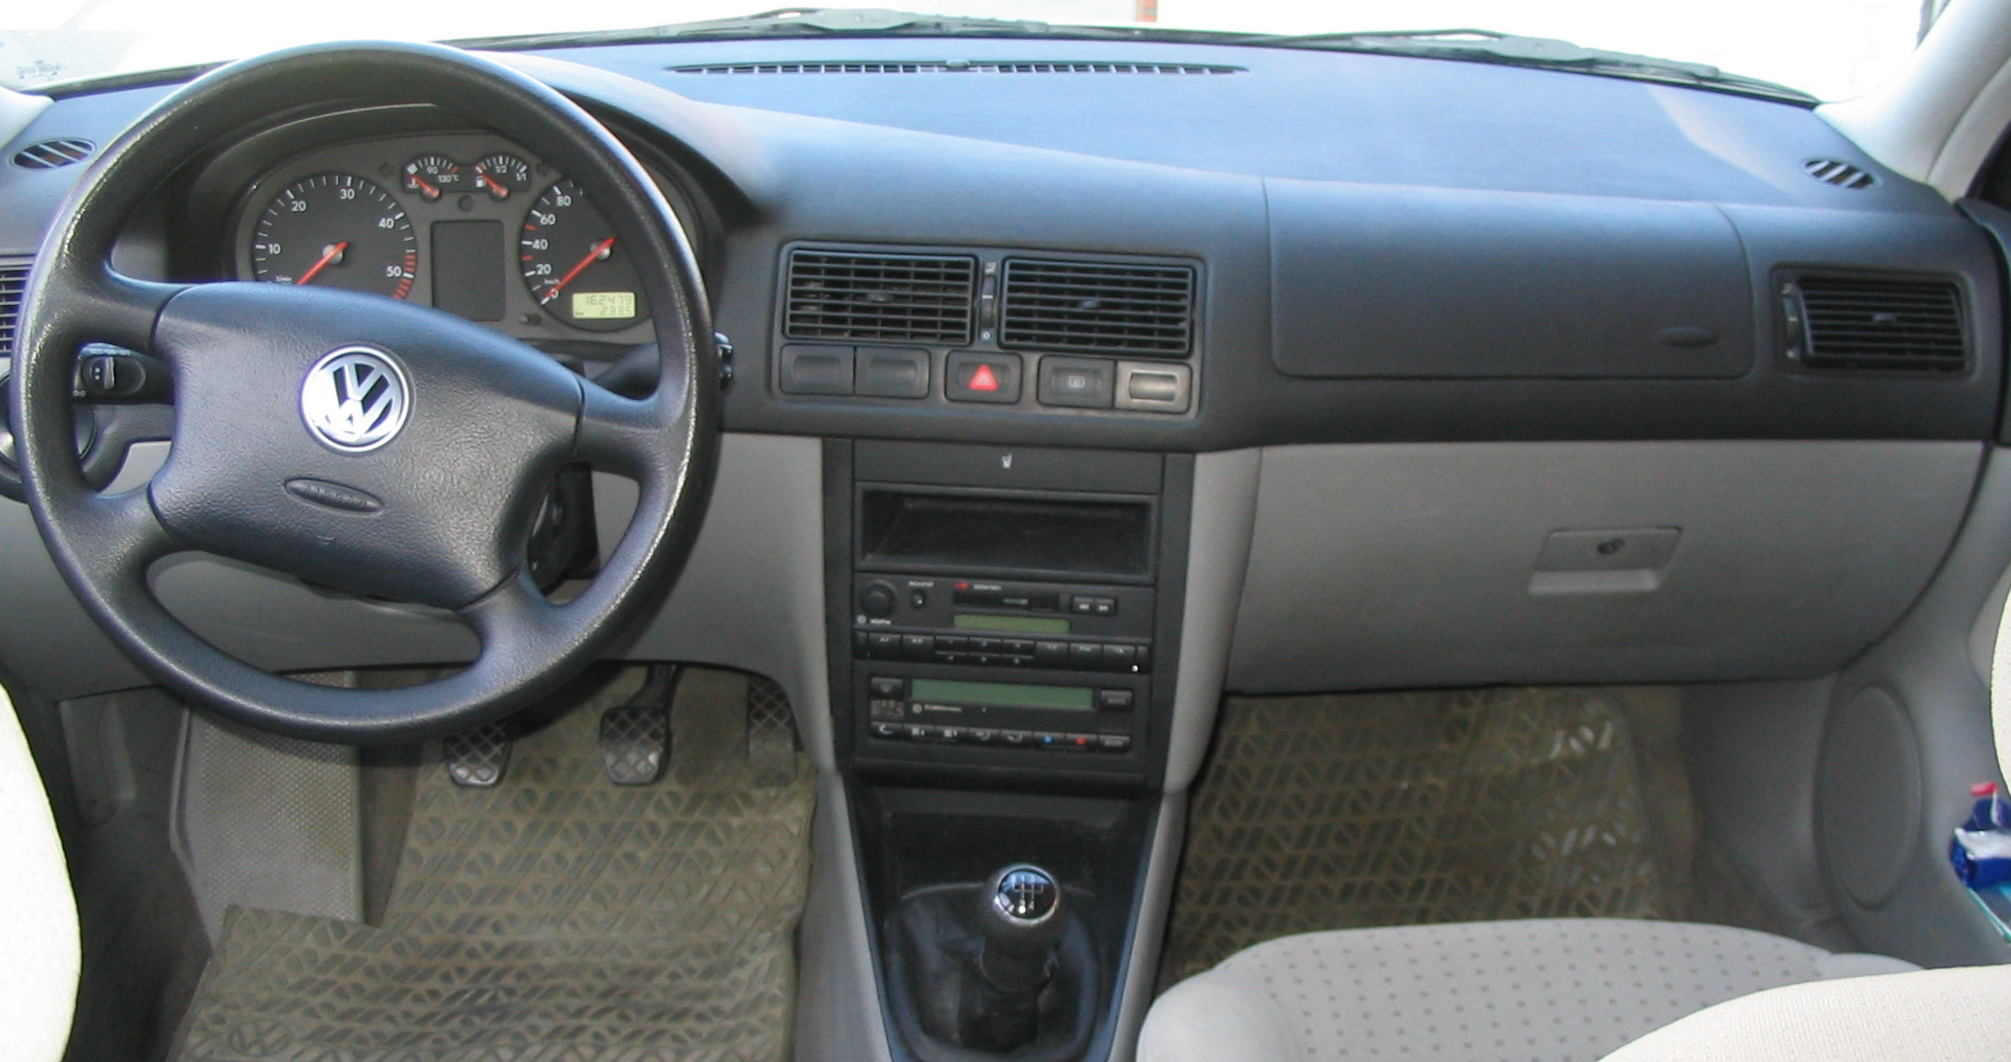 file 1 1111 1999 vw golf tdi 66 kw dashboard img 0419 jpg wikimedia commons wikimedia commons